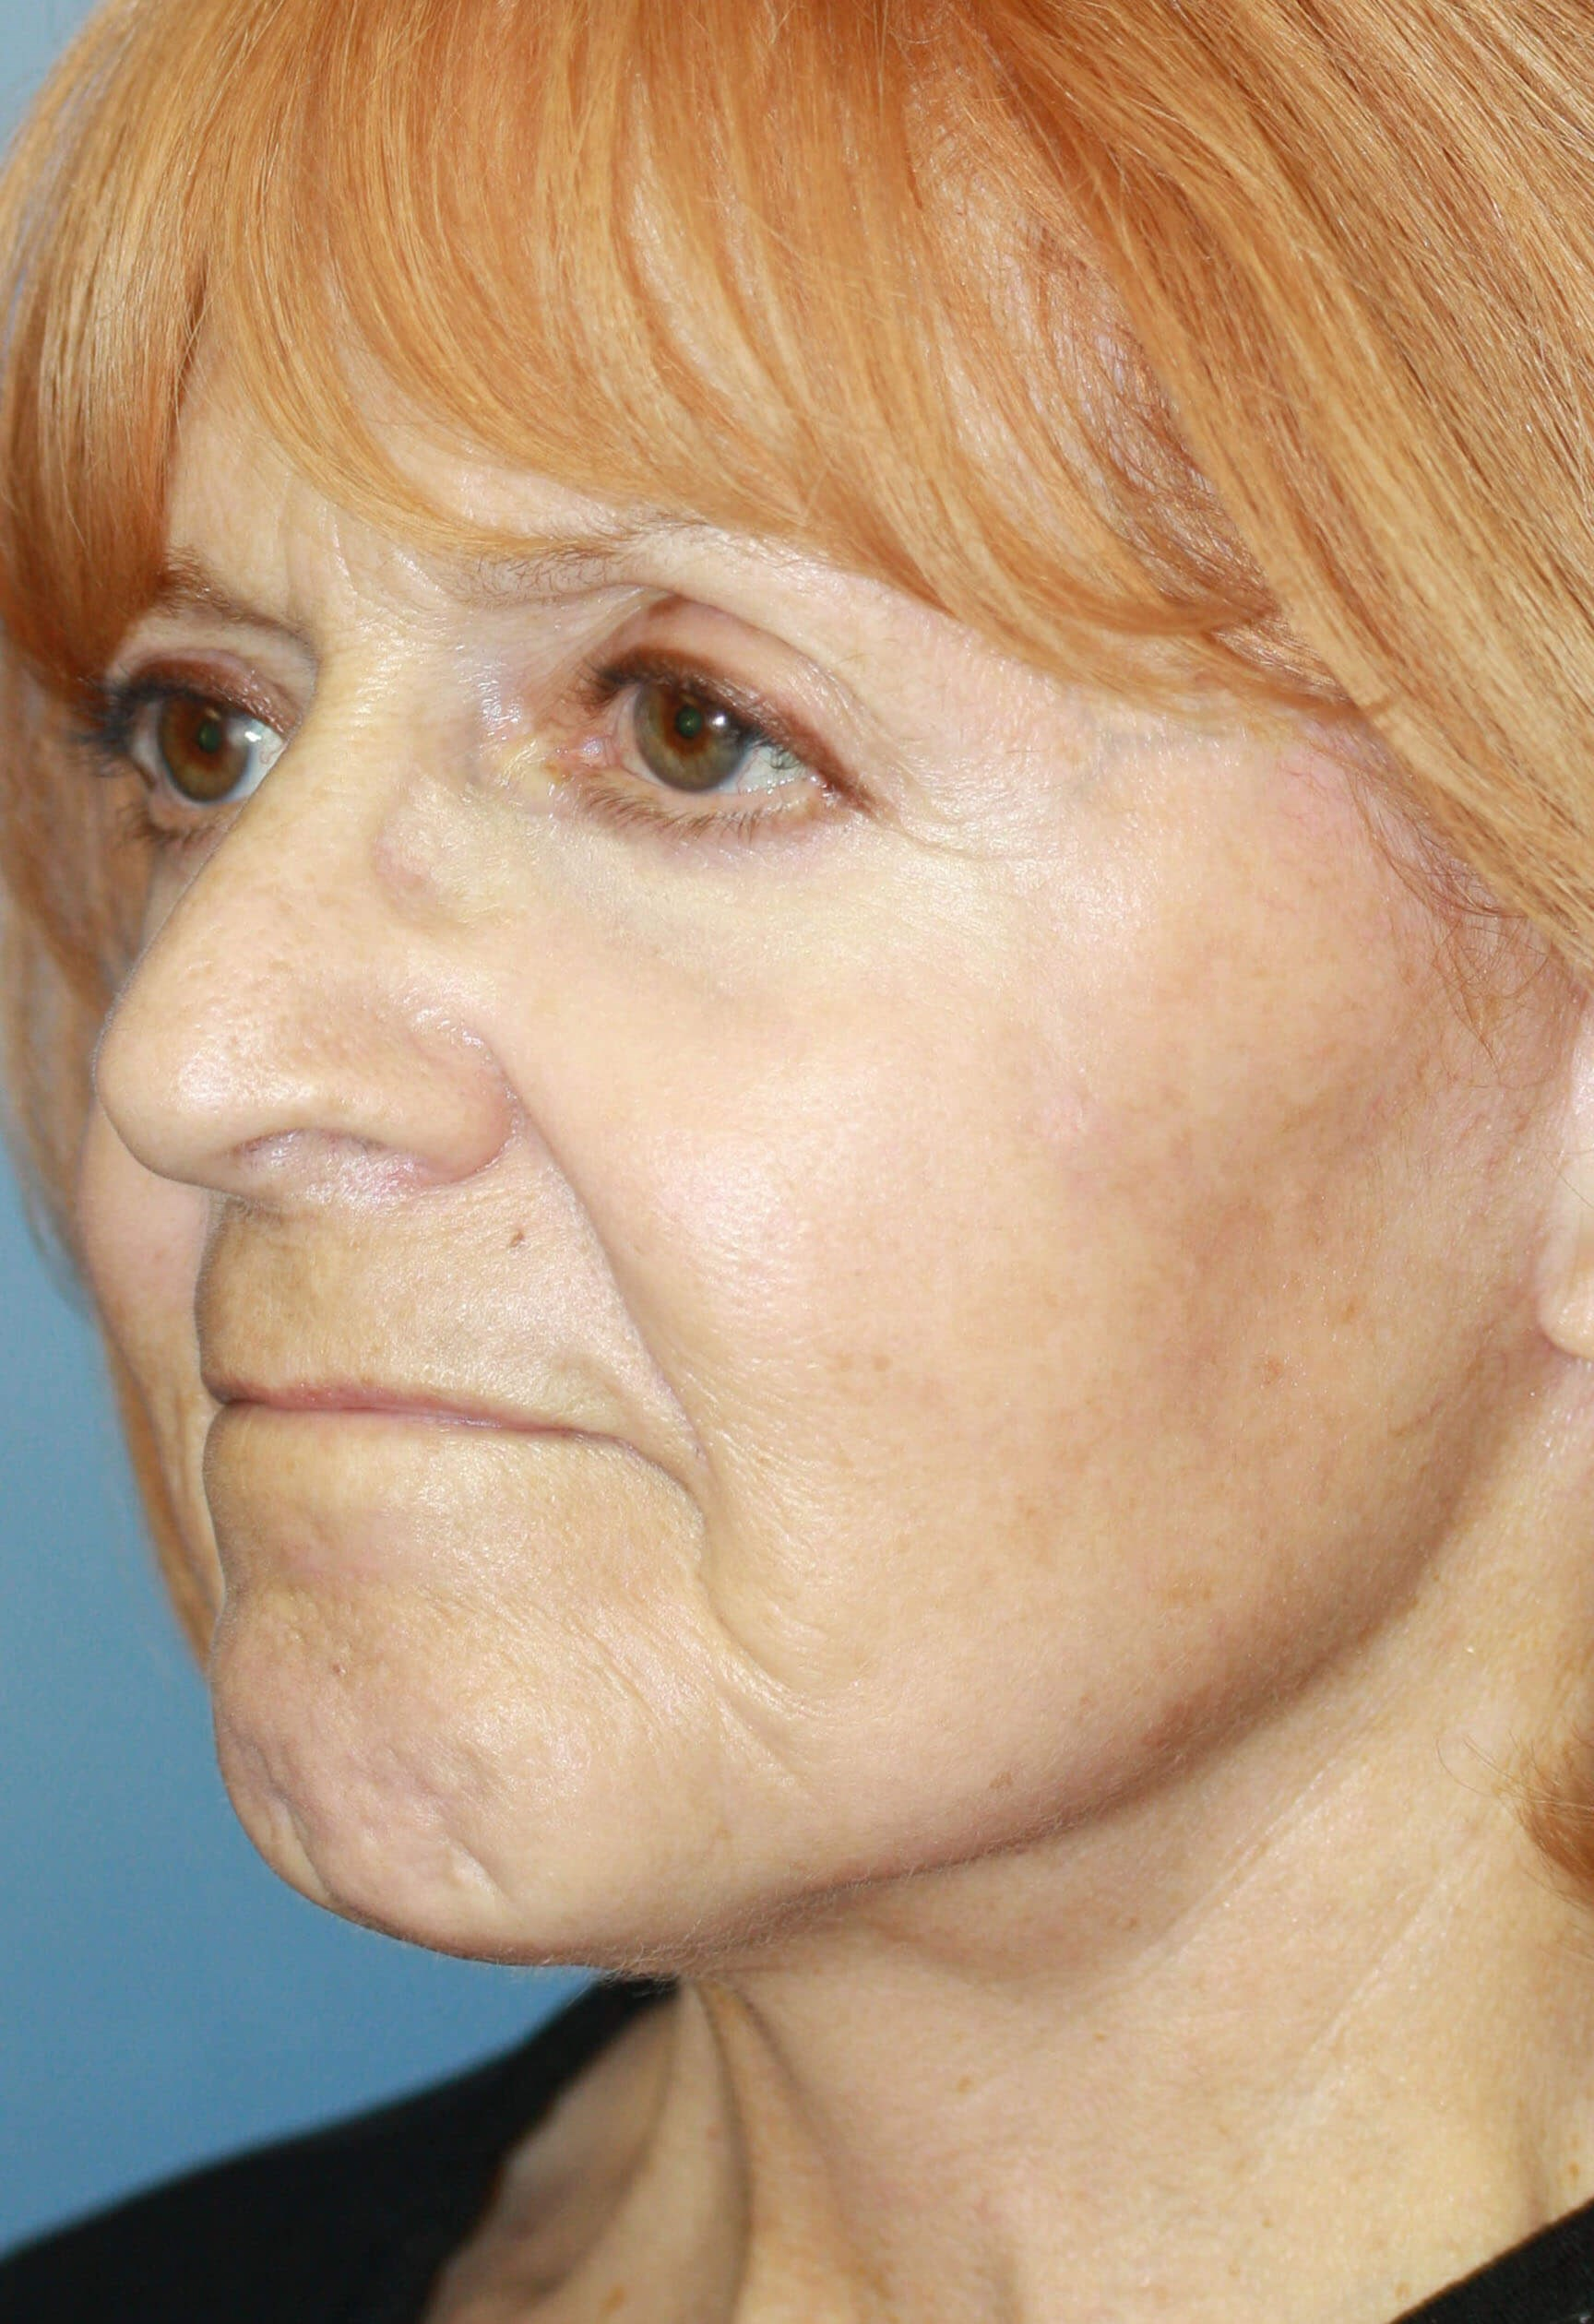 Profile Before and After After Procedures